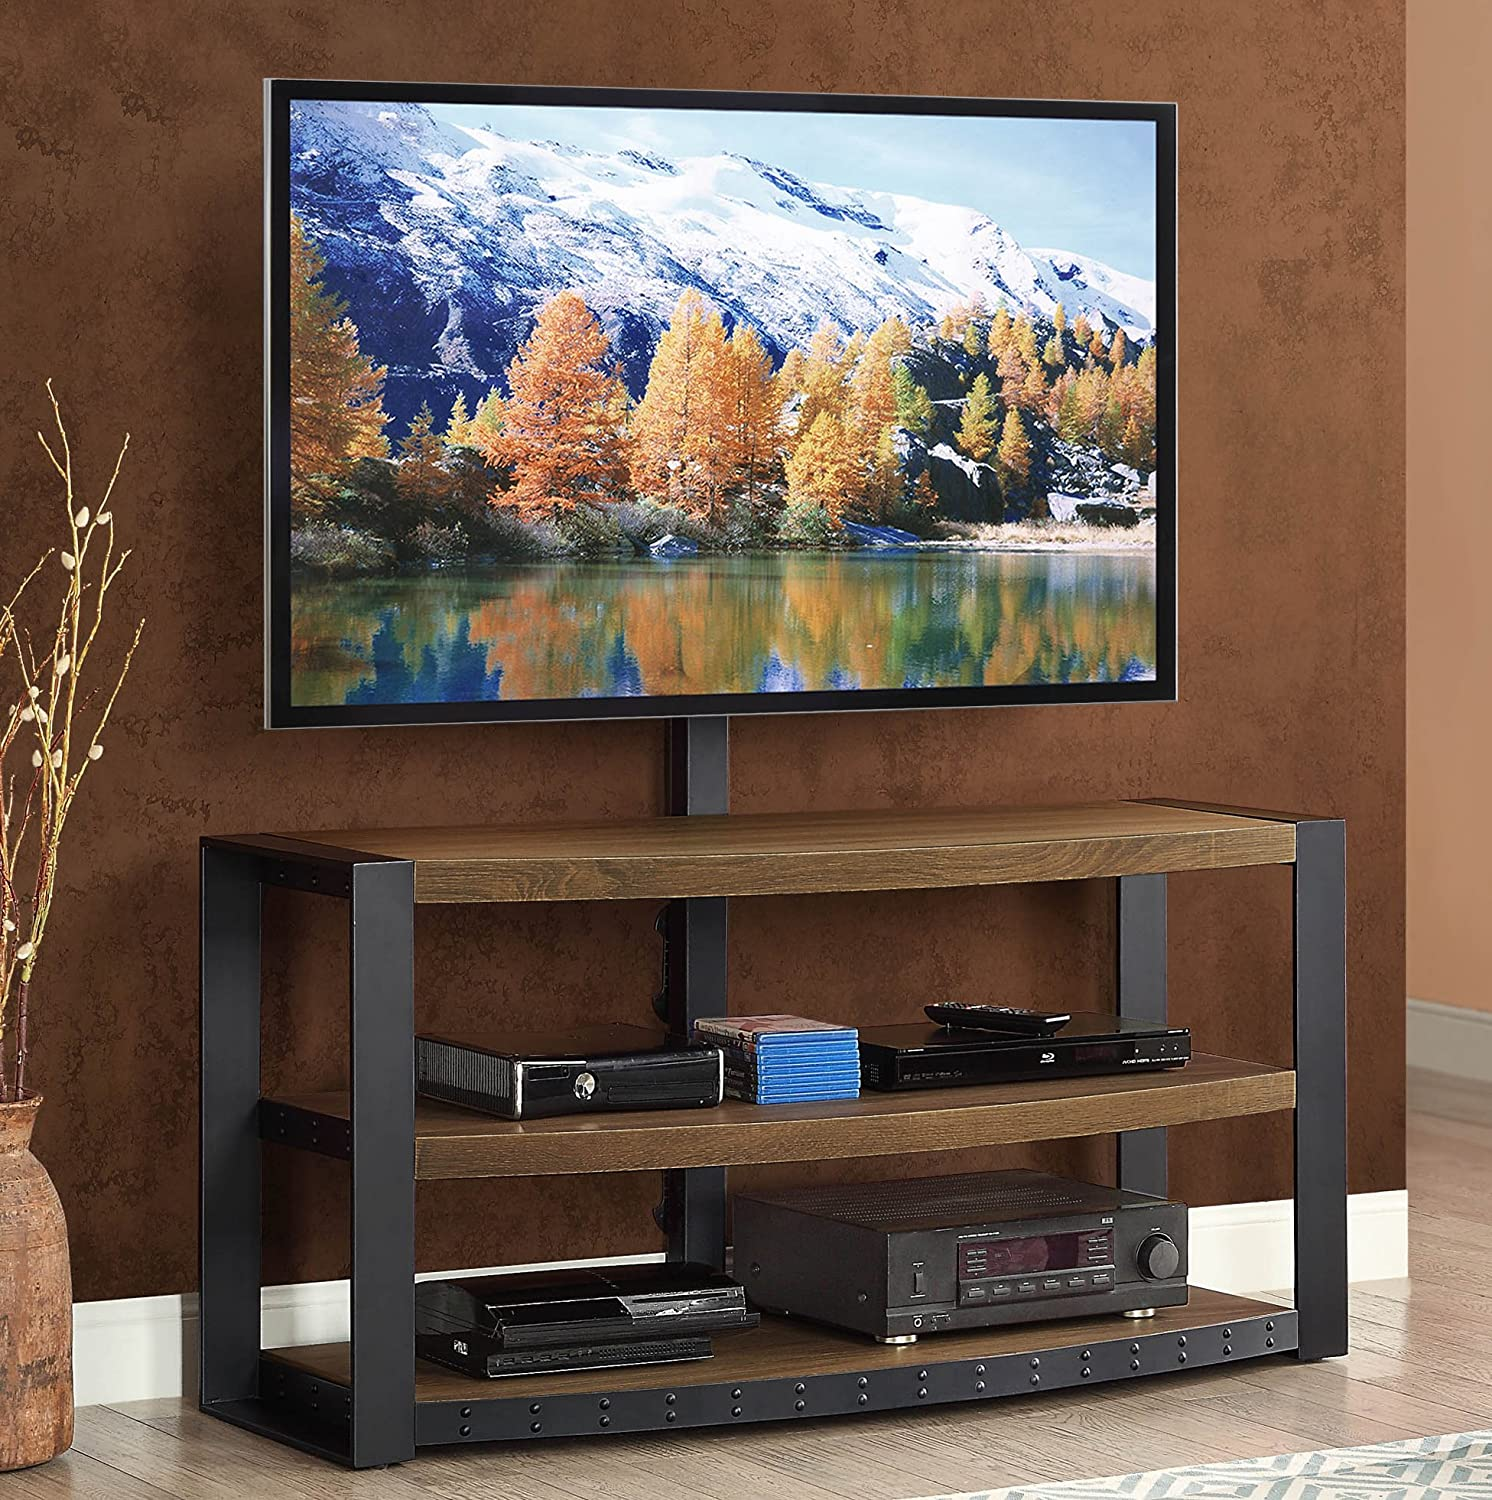 The 5 Best TV Stands In 2021: Reviews & Buying Guide 10